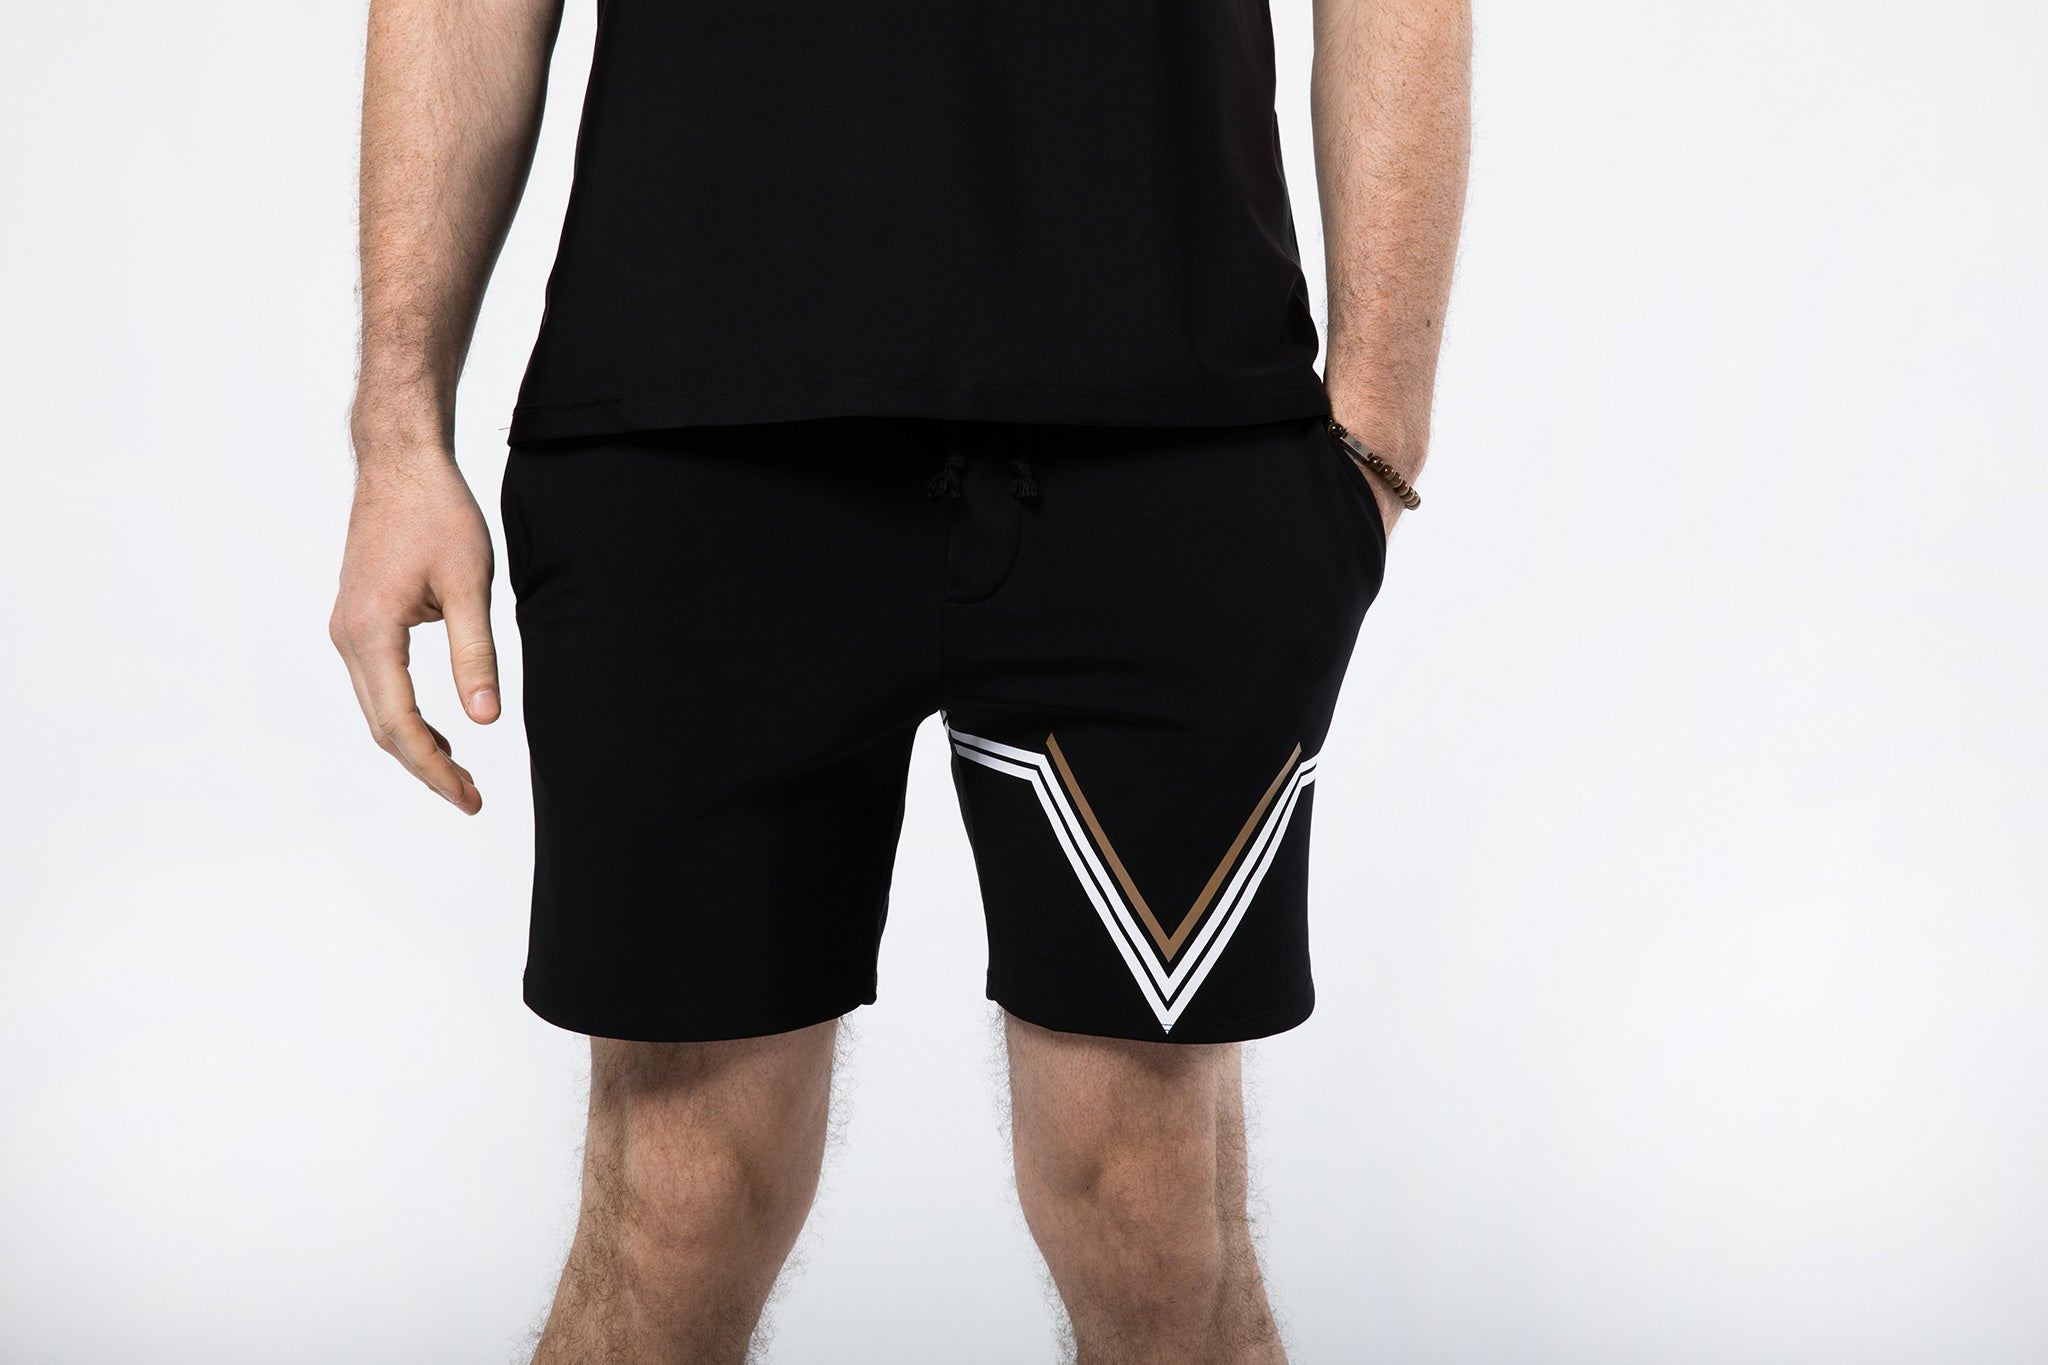 Yoga Clothes for Men - Yoga Shorts with Pocket